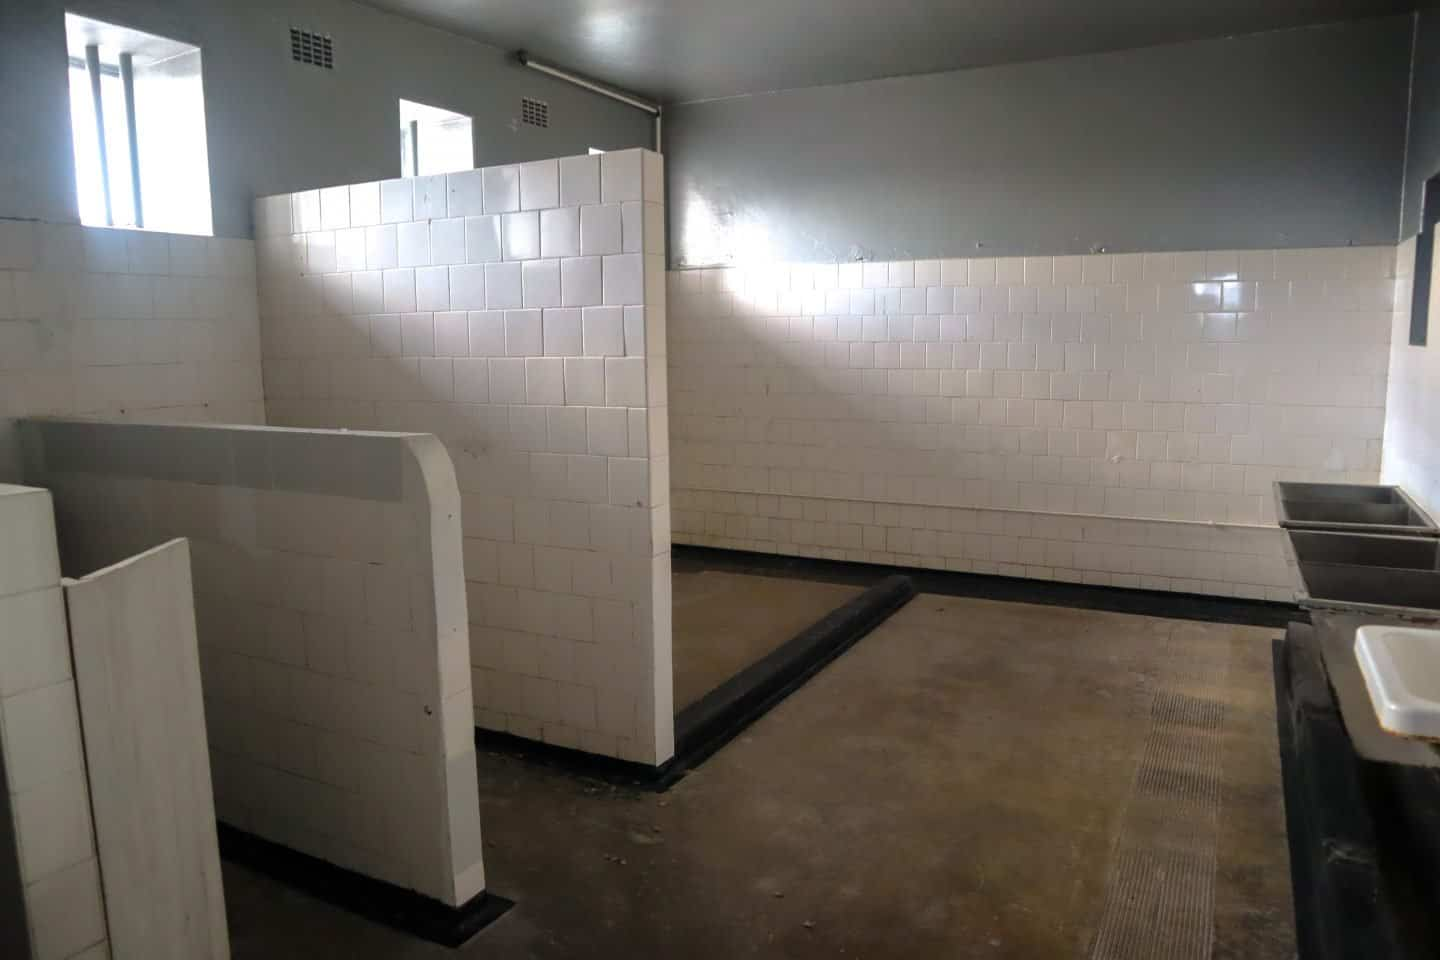 Bathroom facilities in one of the prisons on Robben Island